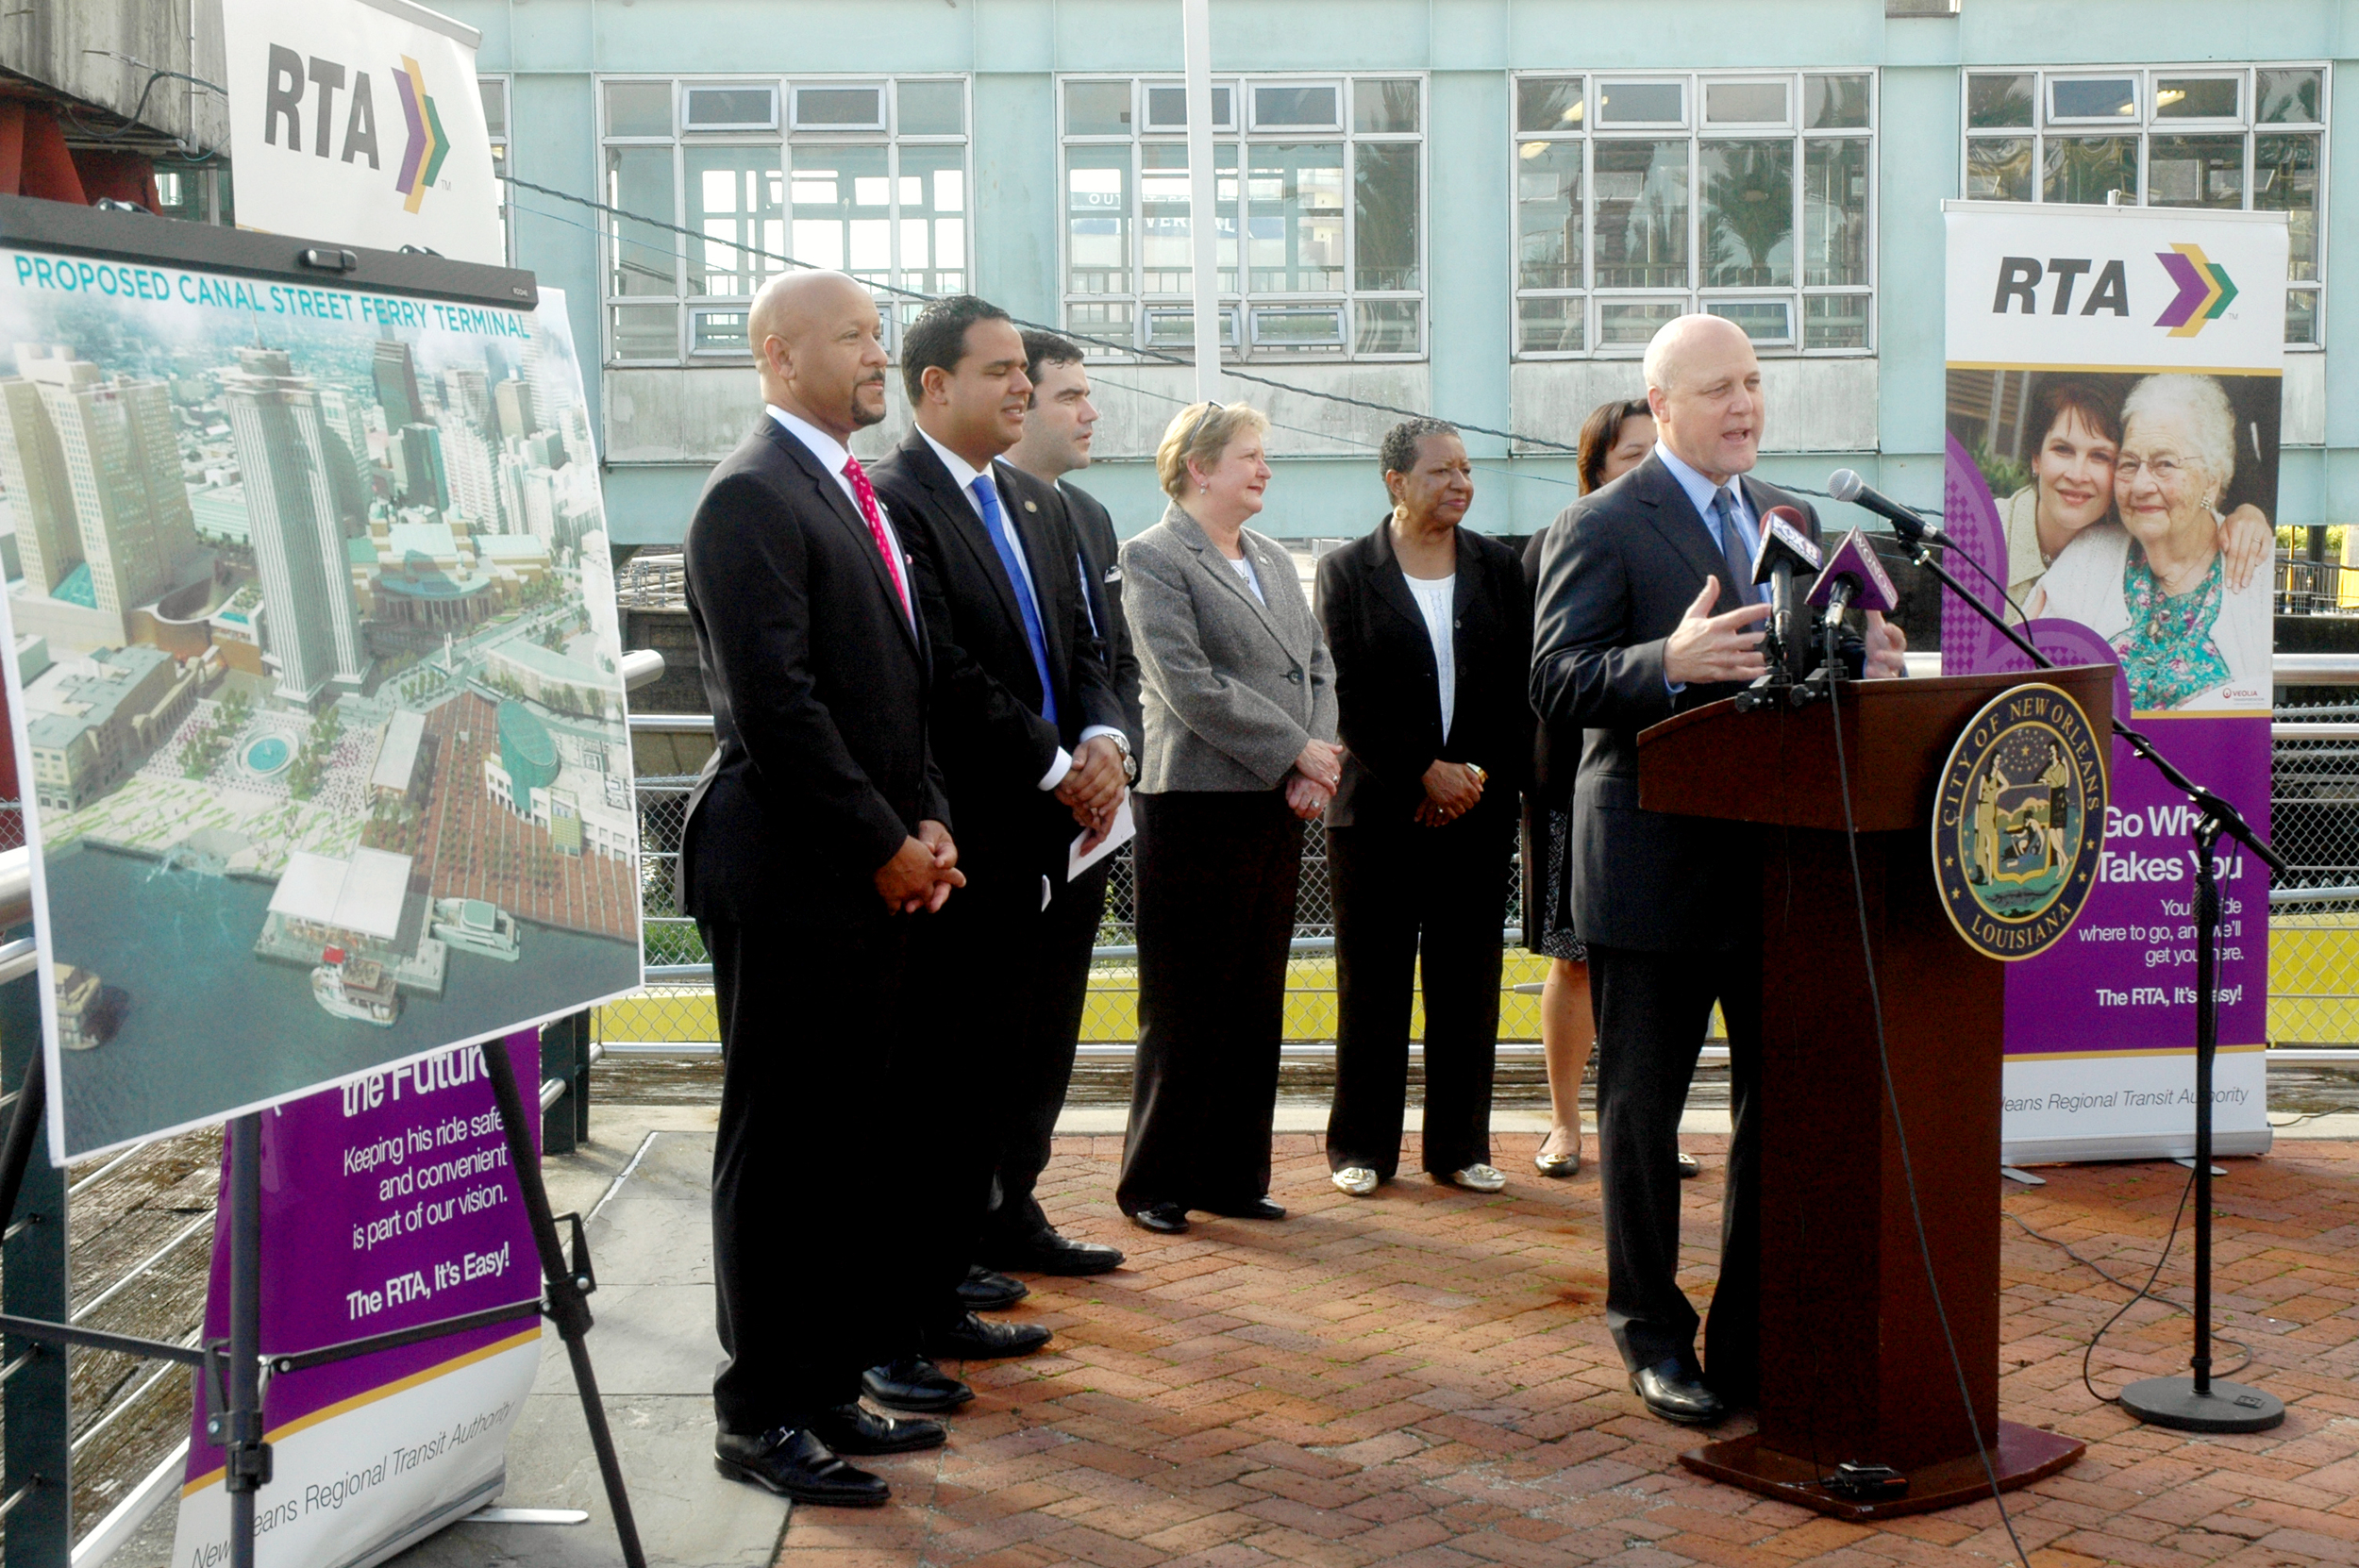 City of New Orleans Mayor Mitch Landrieu announces plans to renovate the Canal Street Ferry Terminal  during a press conference in Woldenberg Park Nov. 5, 2015.